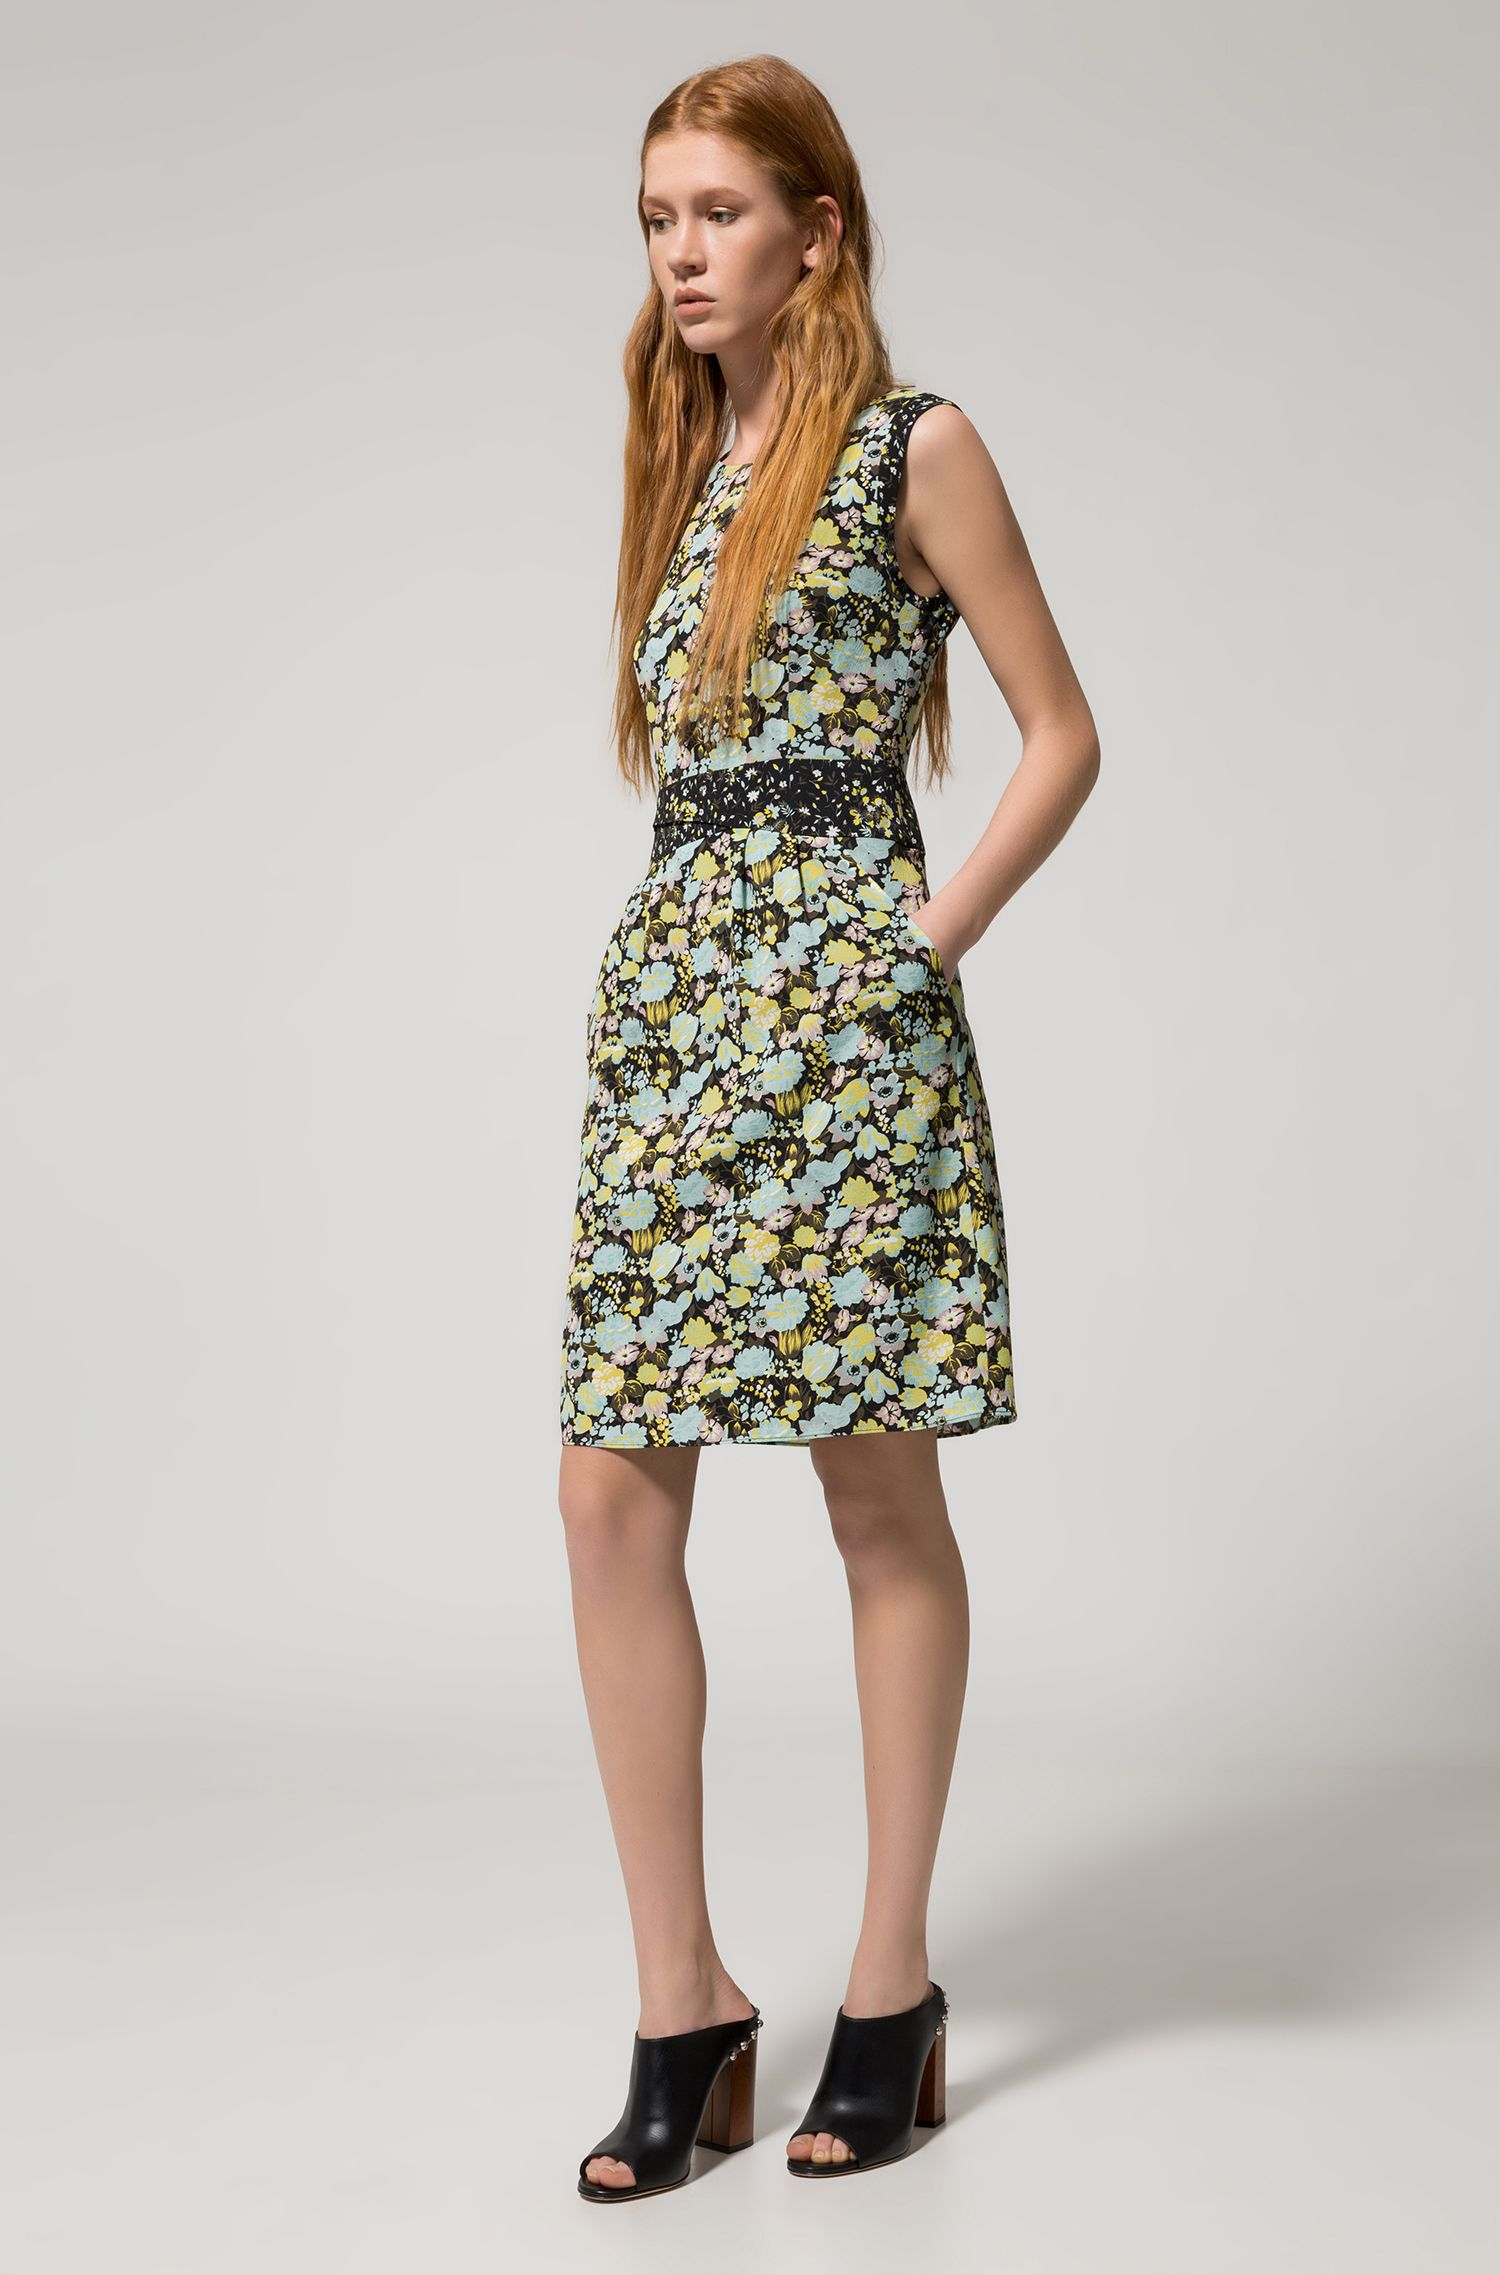 Cap-sleeved floral dress in stretch fabric HUGO BOSS